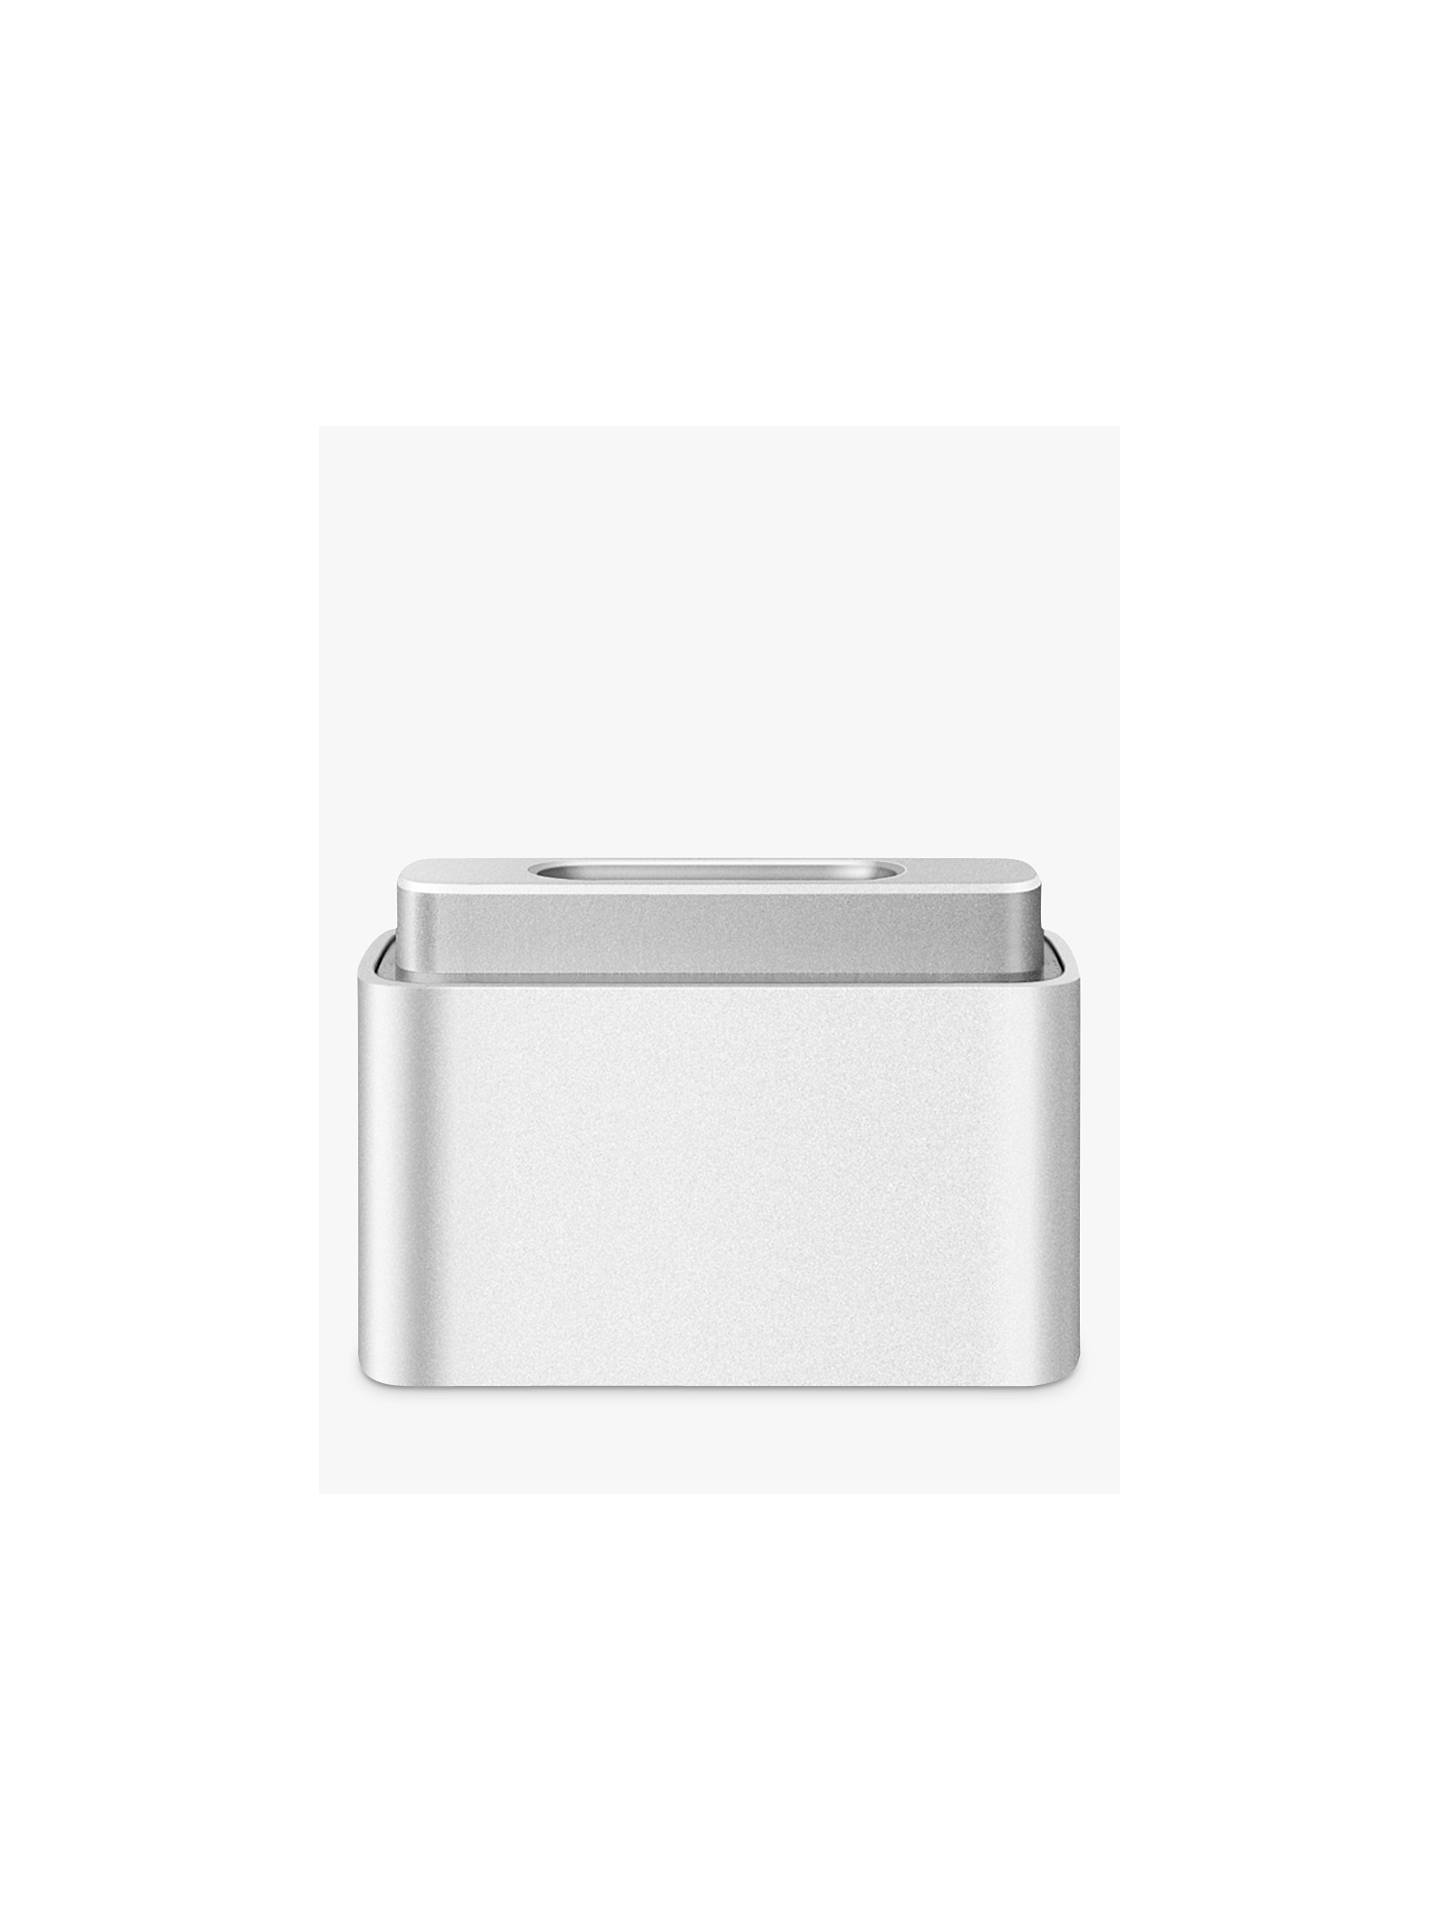 BuyApple MagSafe to MagSafe 2 Converter Online at johnlewis.com